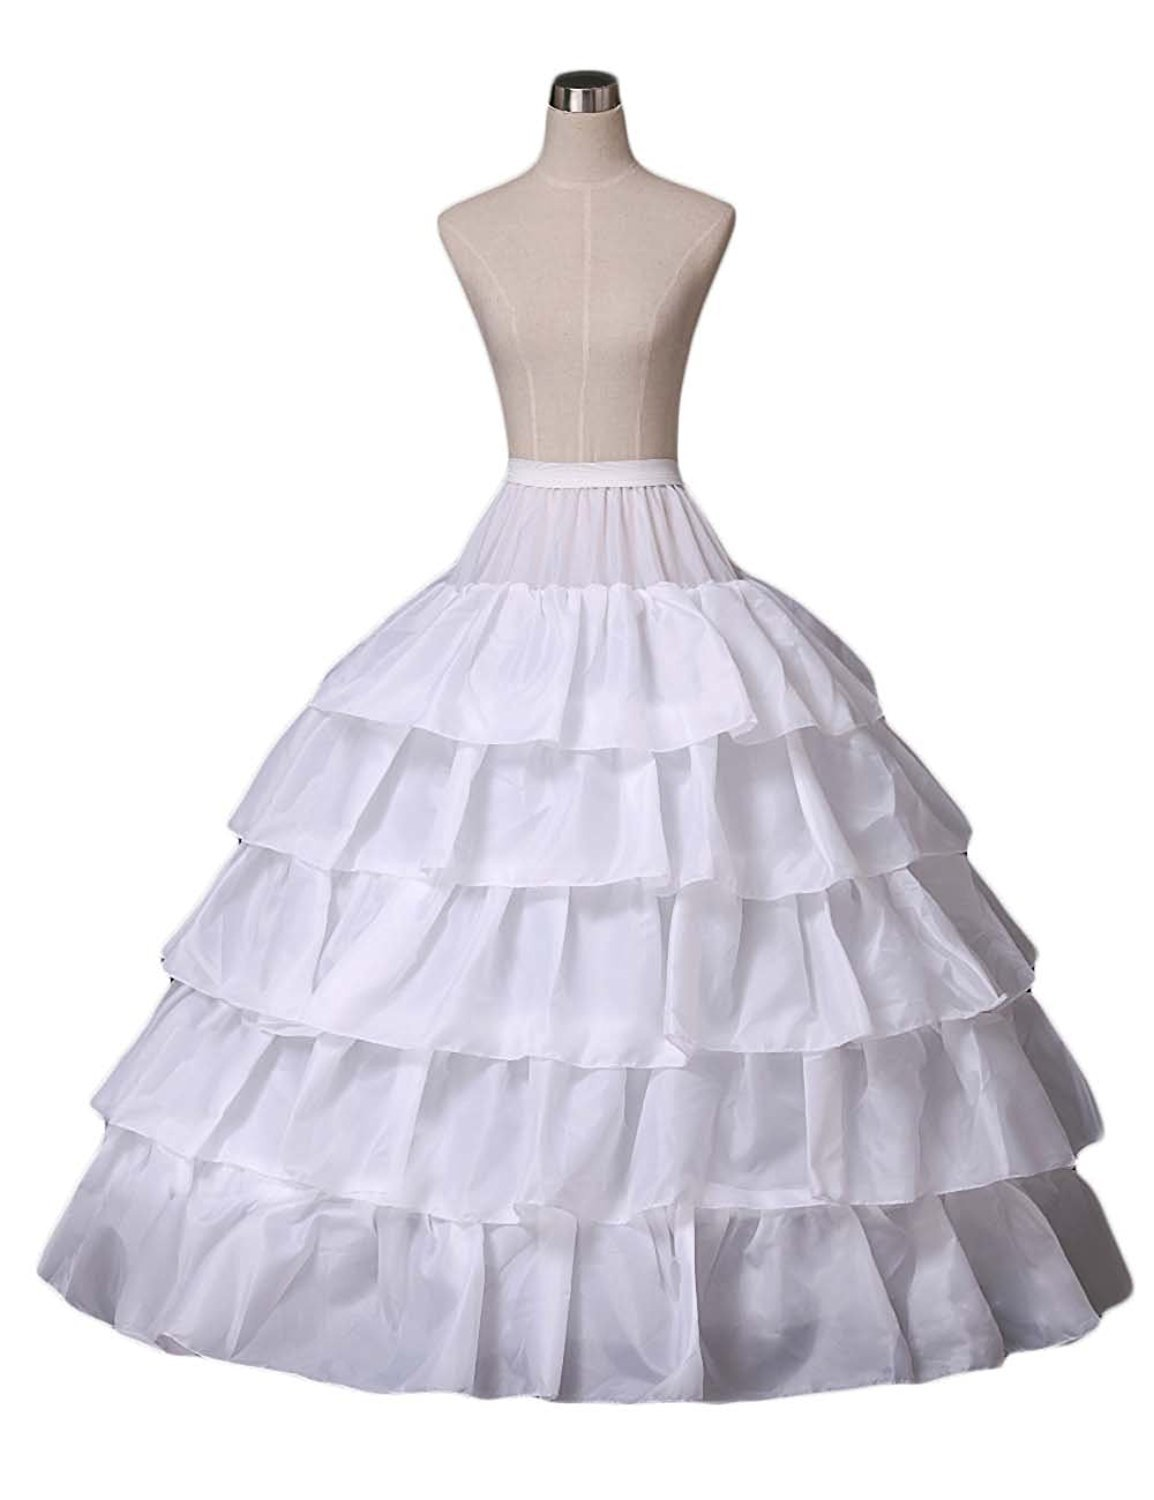 Elinadress Women 4-Hoop Wedding Petticoat Skirt Quinceanera Ball Gown White